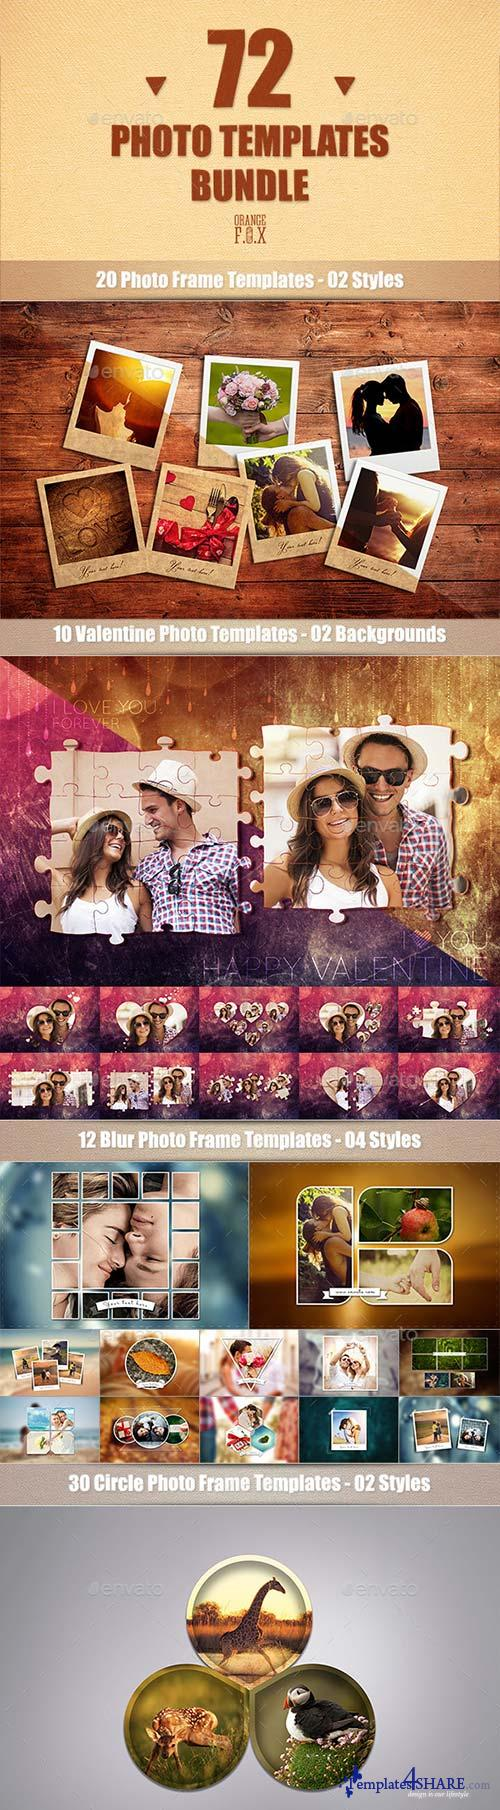 GraphicRiver 72 Photo Templates Bundle